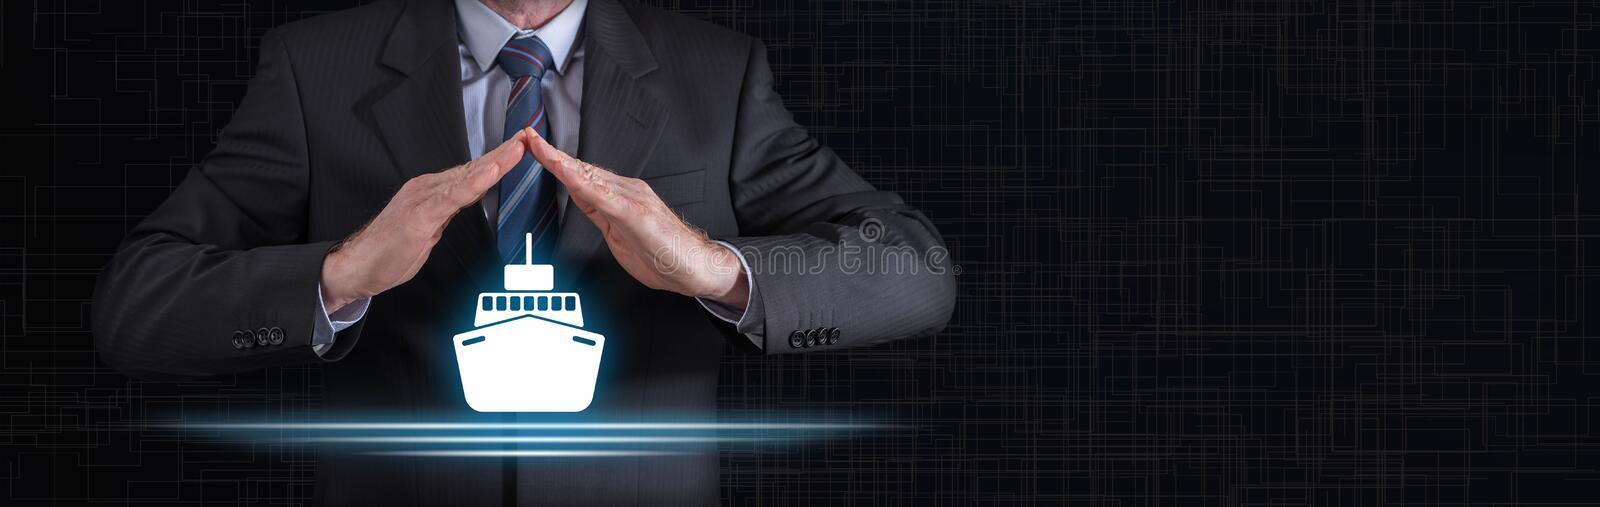 Concept of boat insurance stock photography